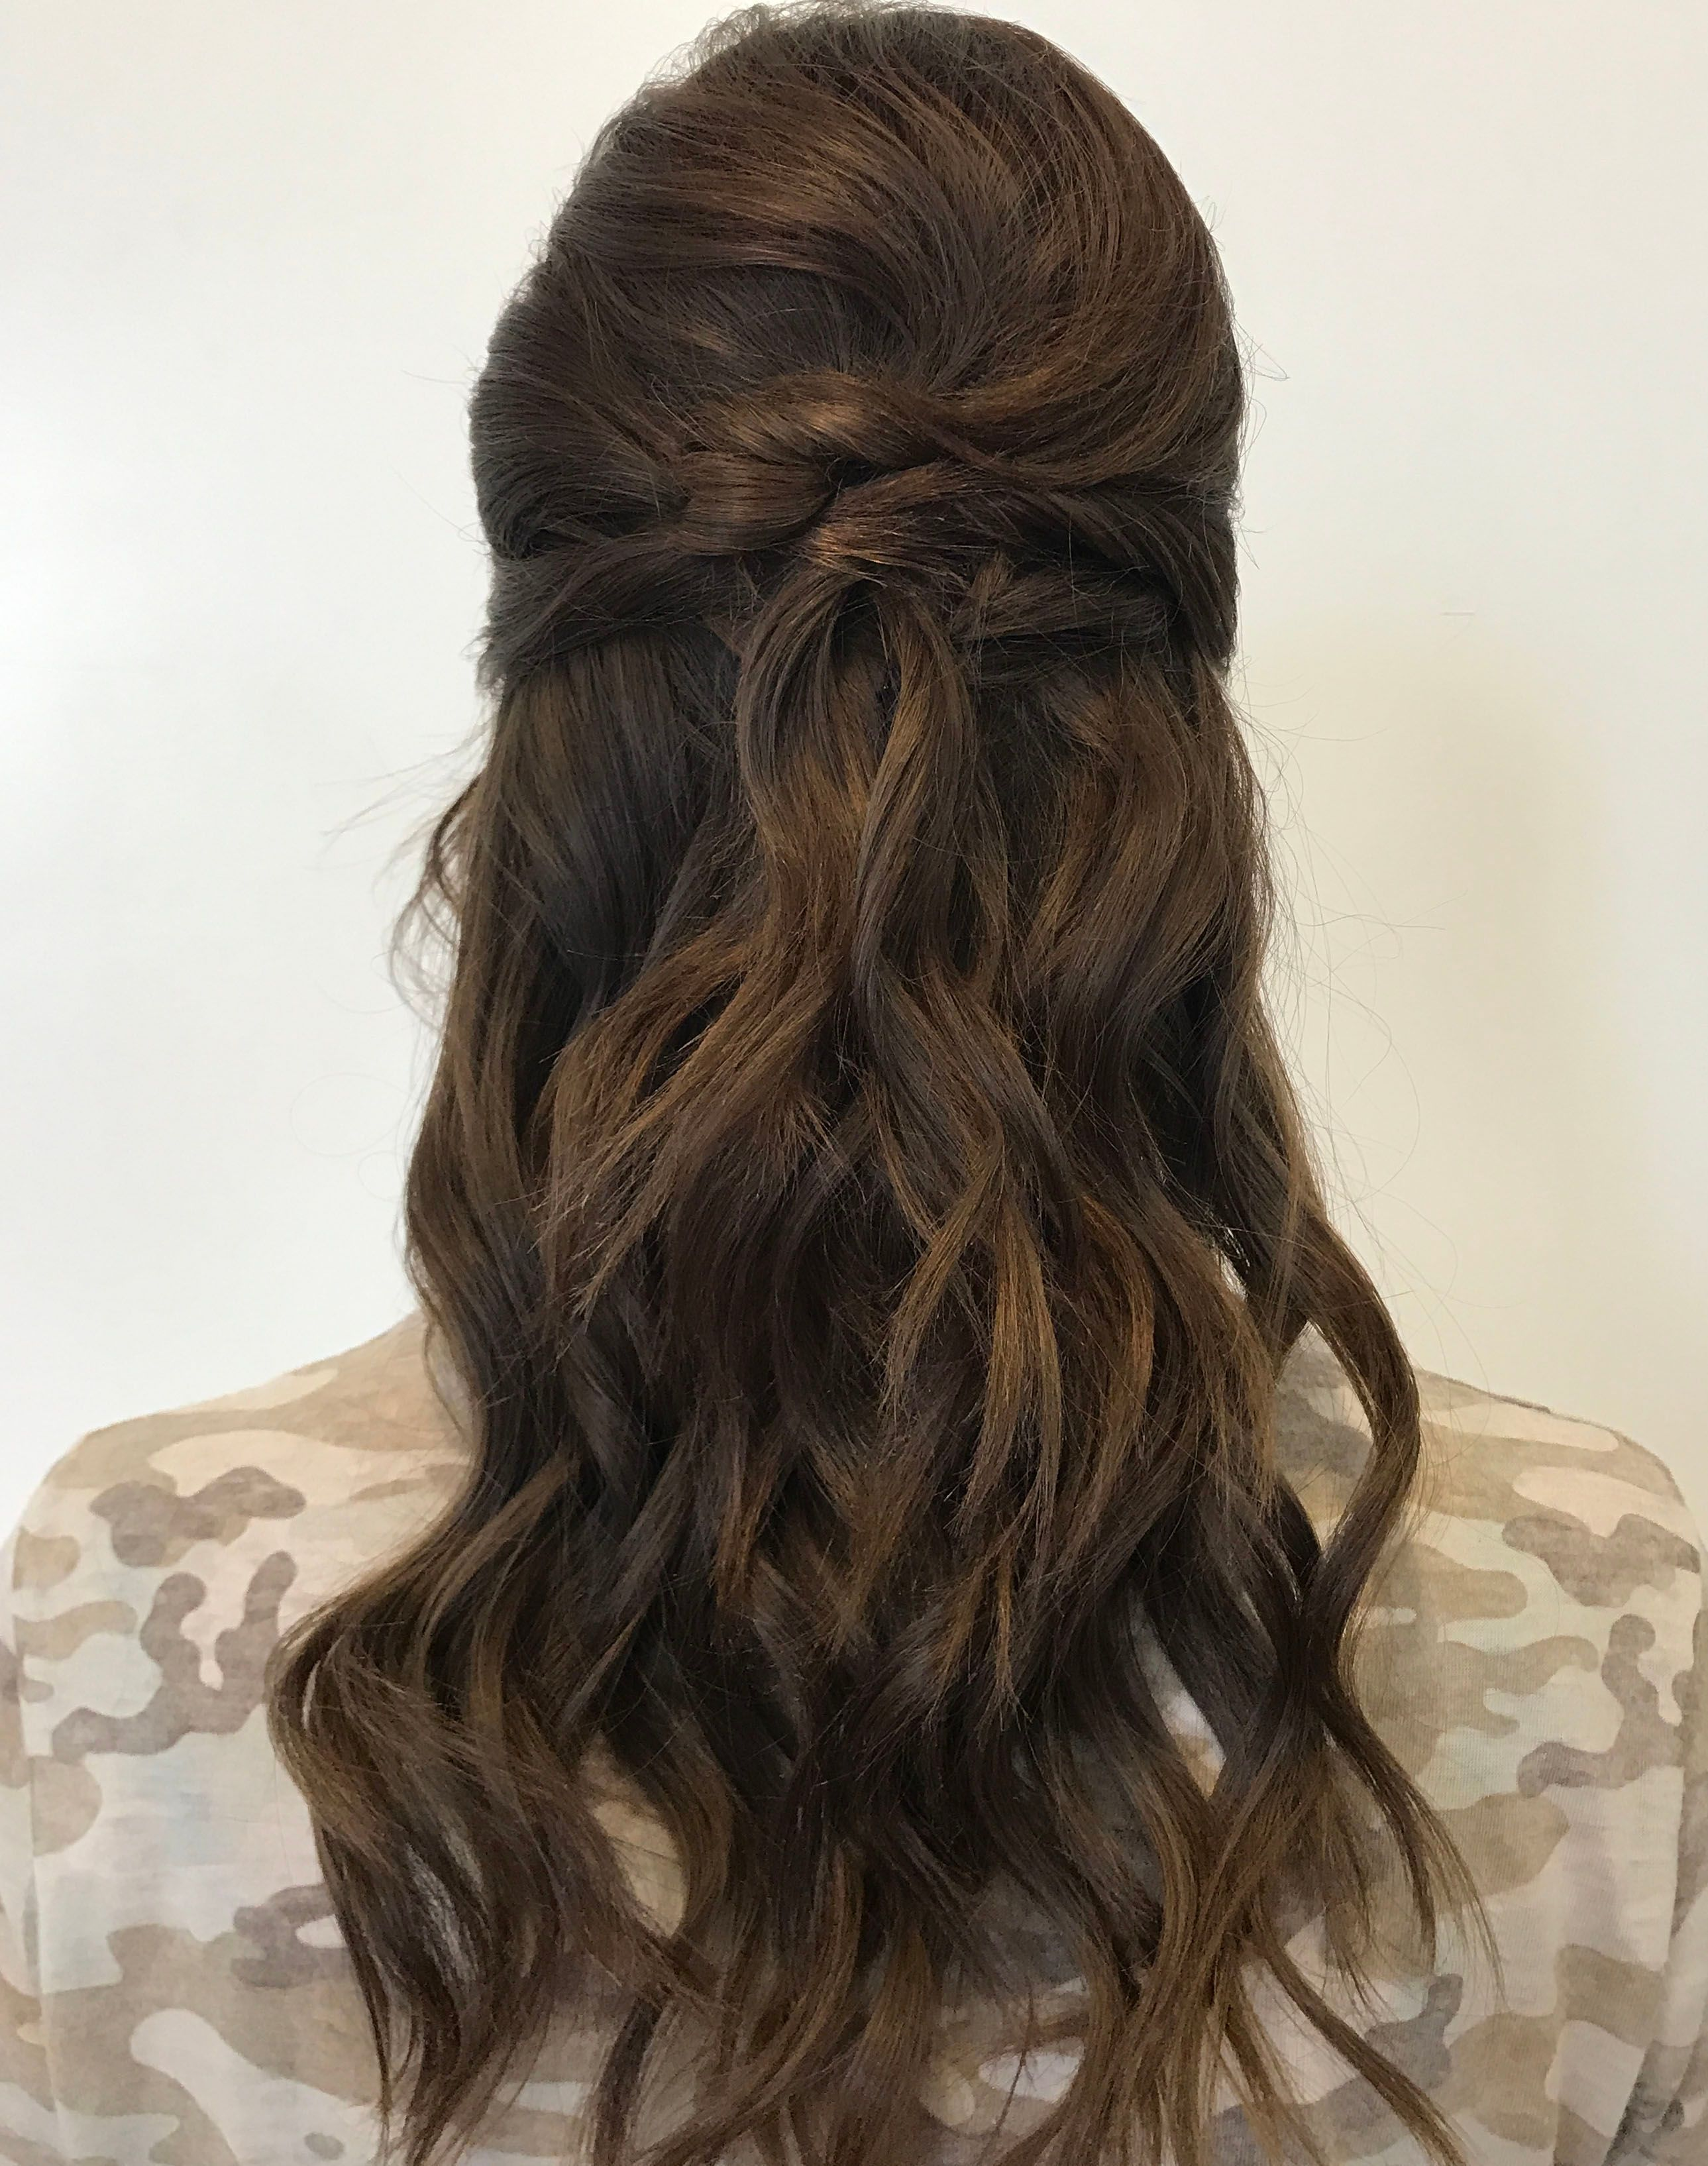 Half up half down knotted and curled bridal style